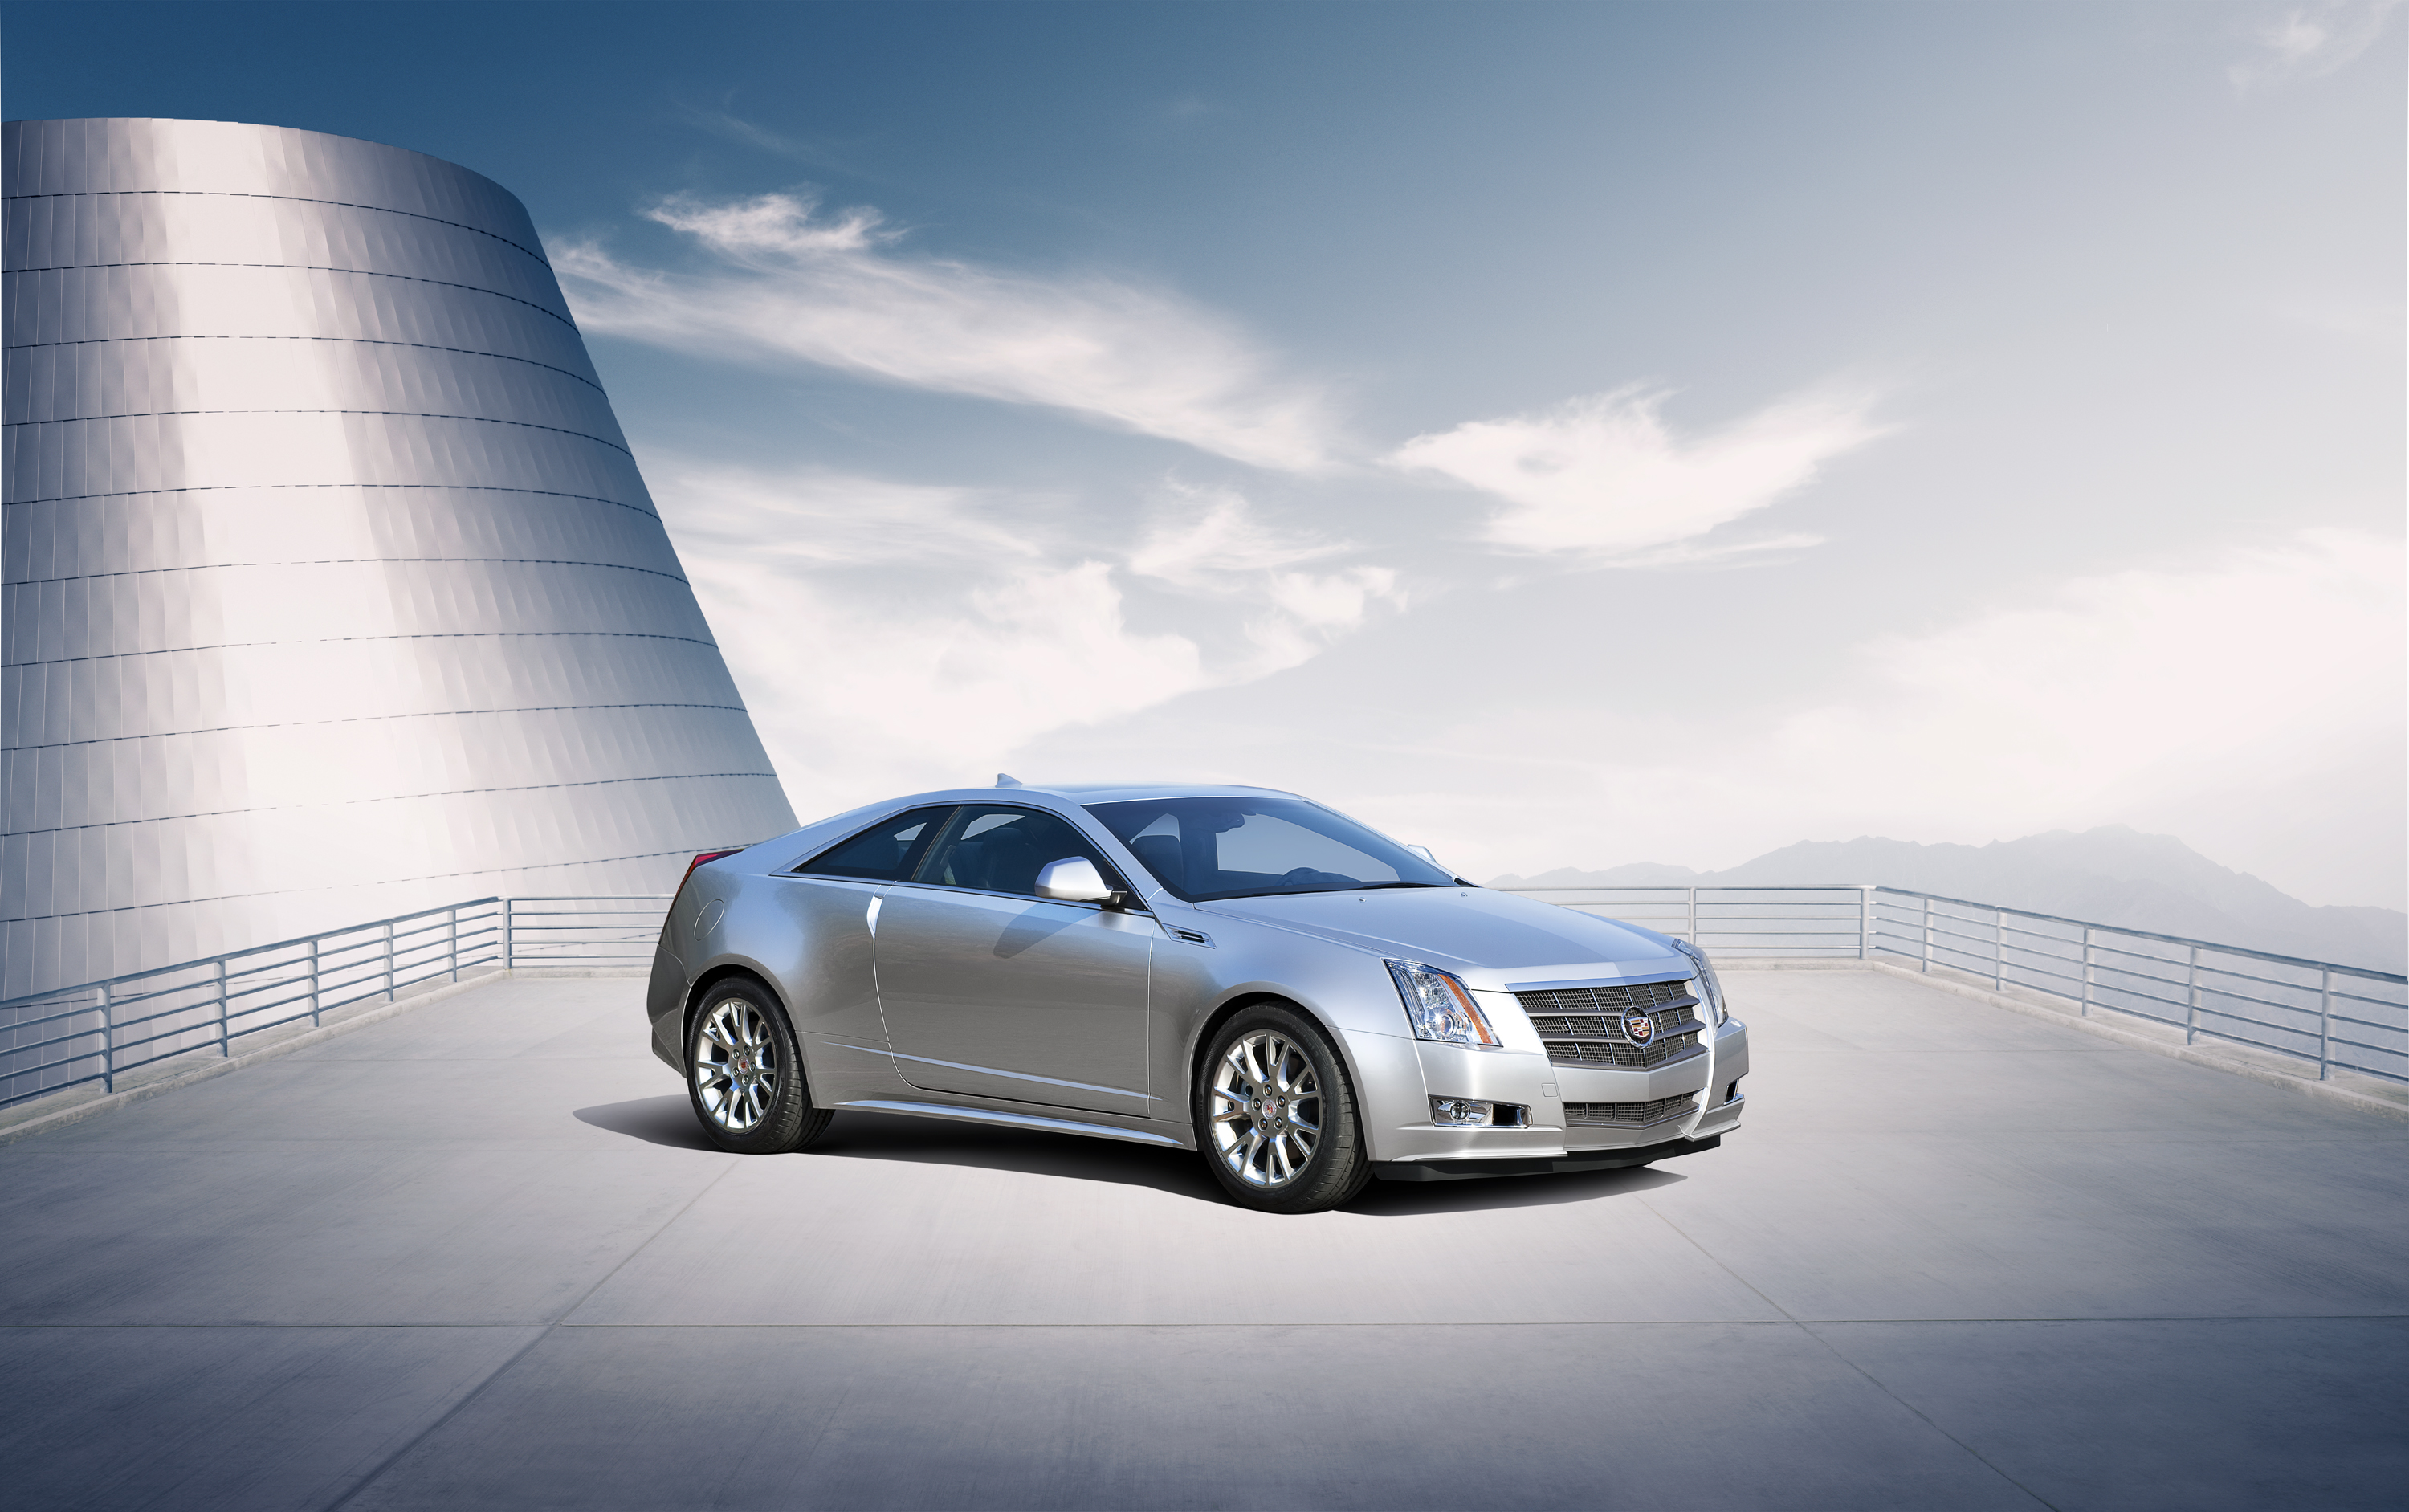 2011 Cadillac CTS Coupe.